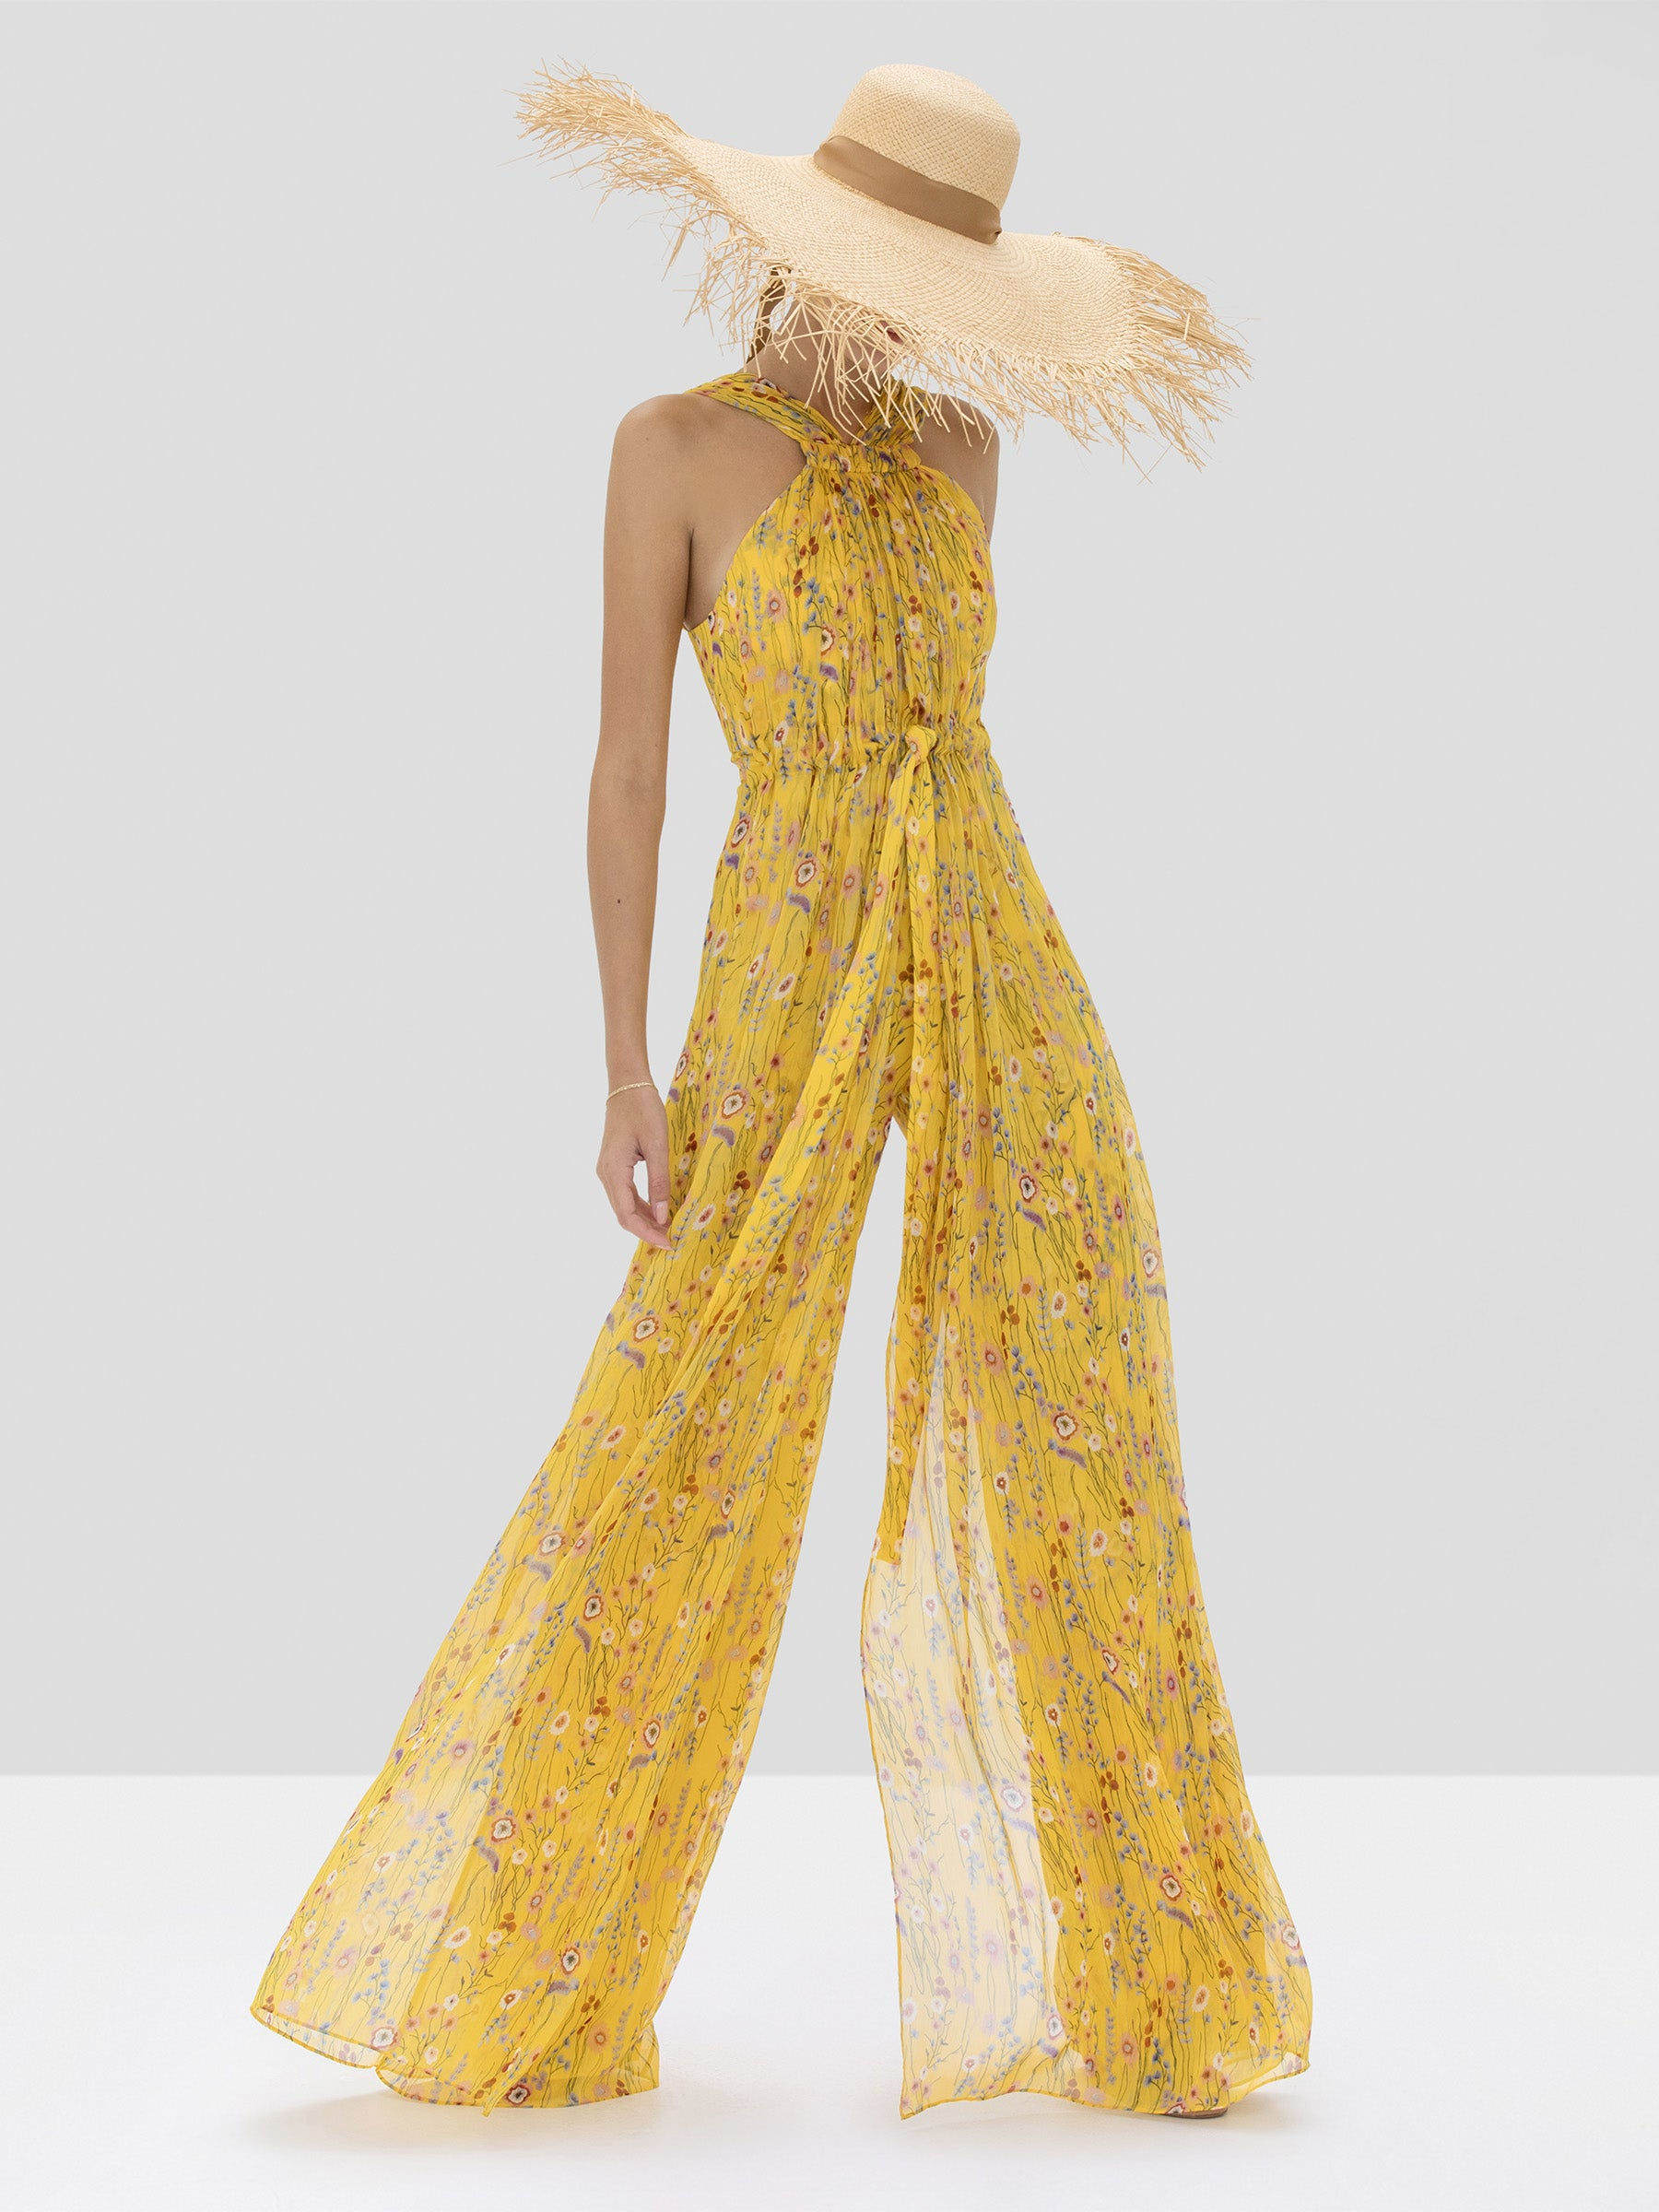 Alexis Janina Jumpsuit in Red Bouquet from Spring Summer 2020 Collection - Rear View